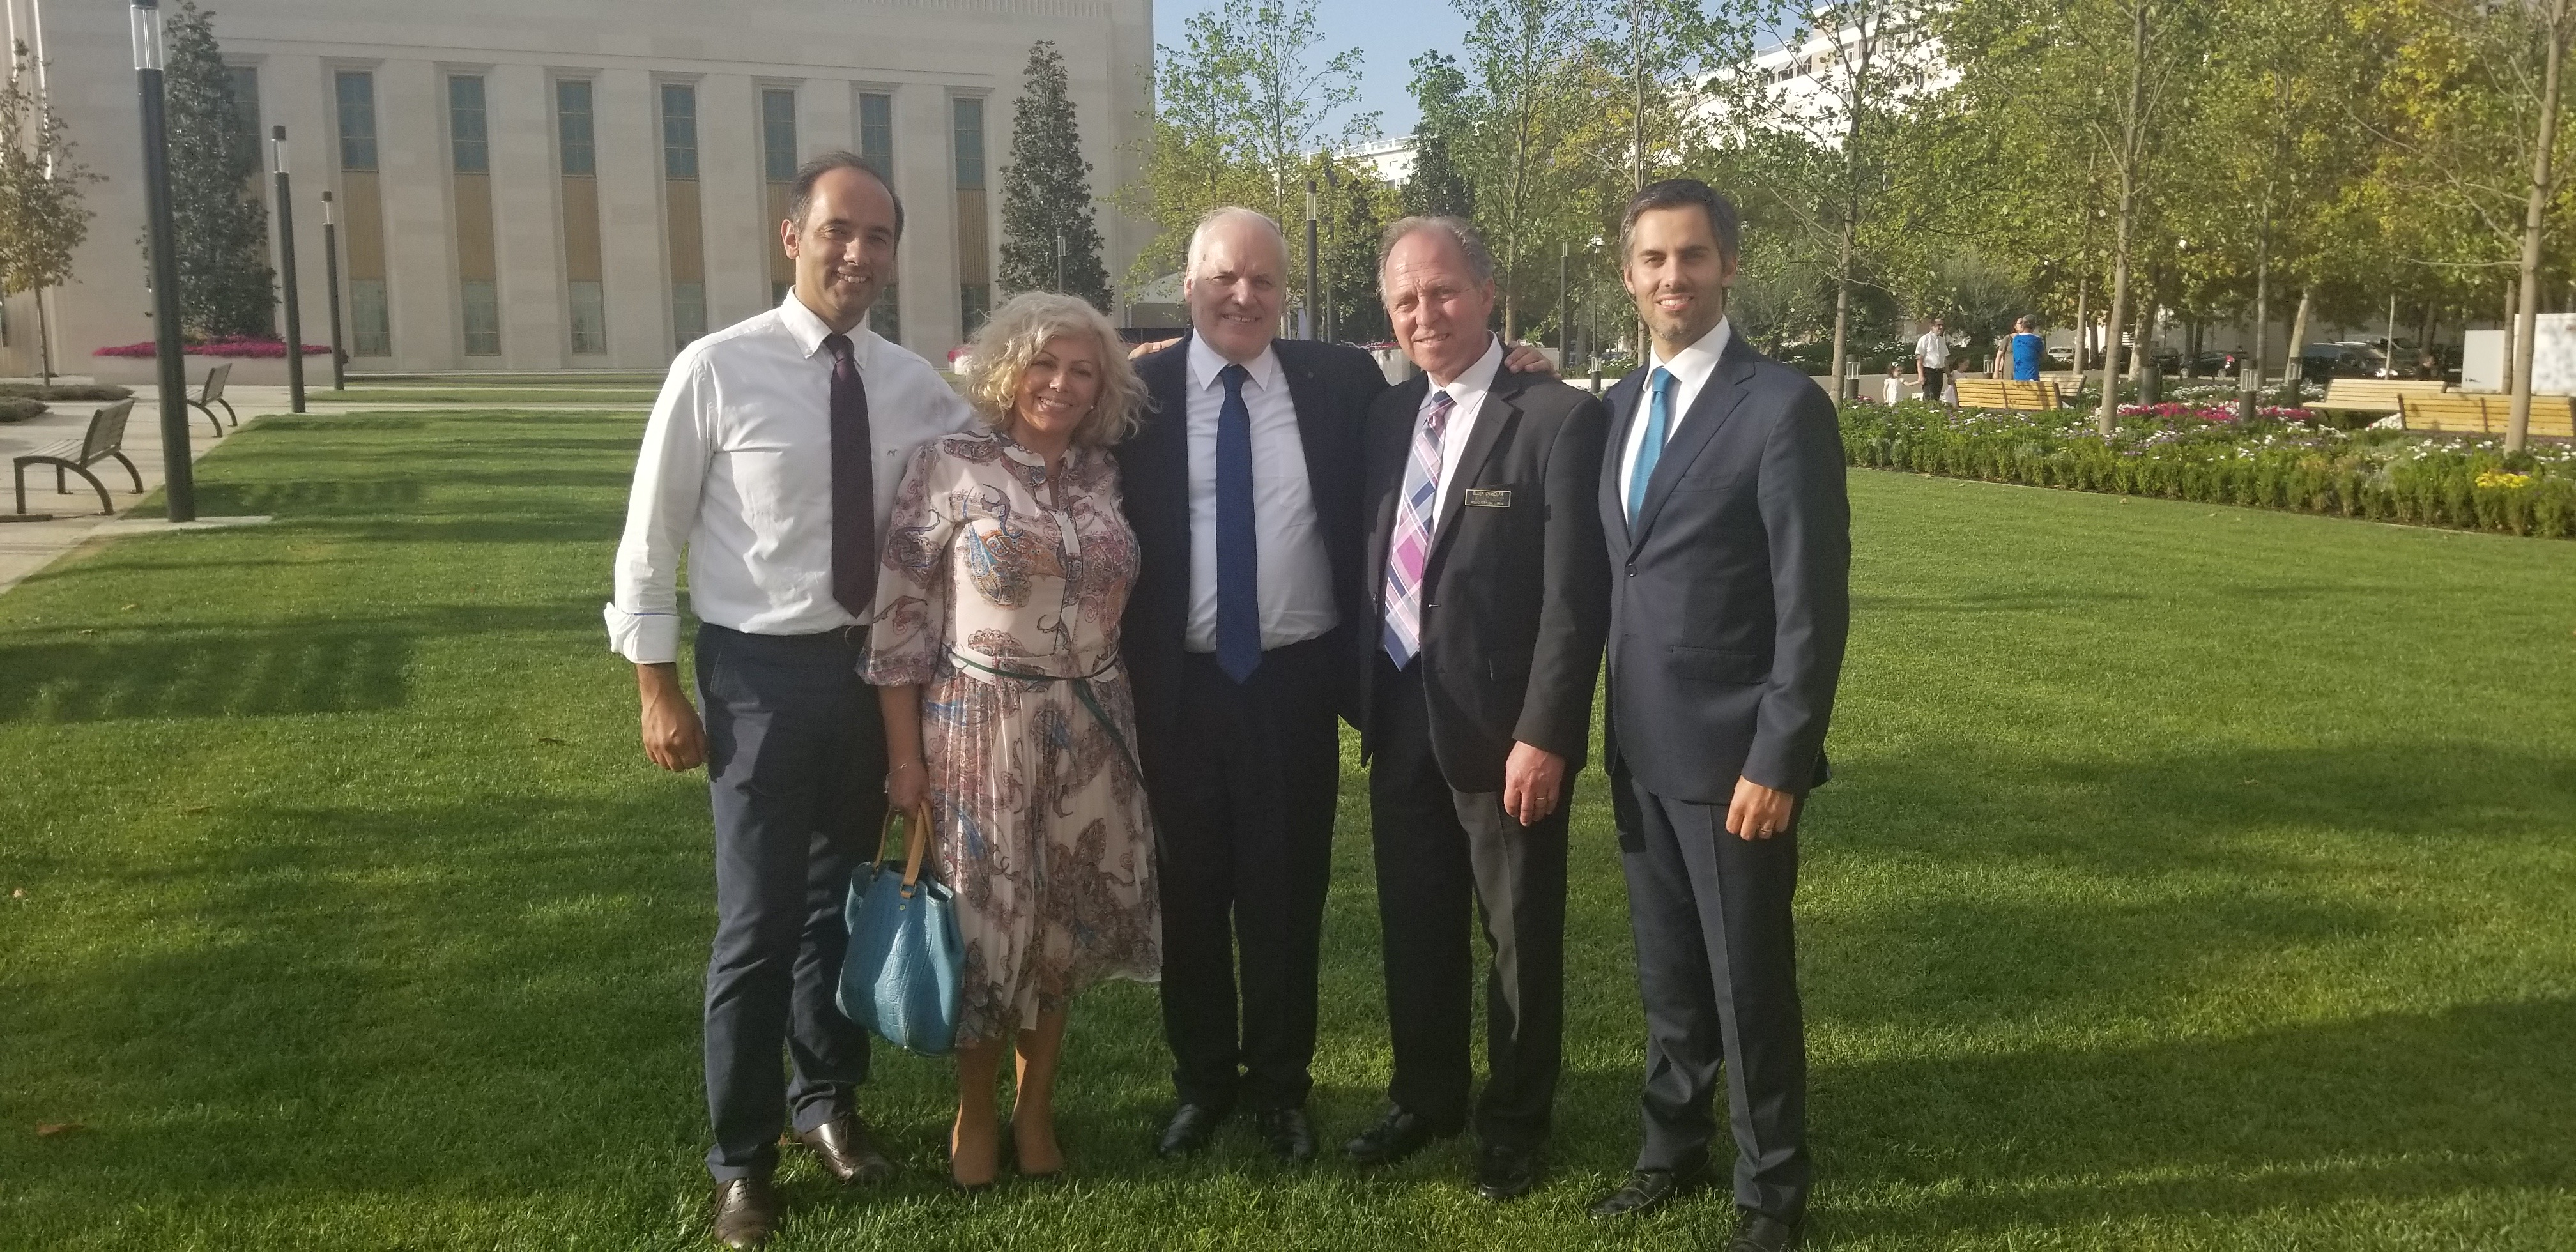 The Silva family from Porto, Portugal, pauses for a photo near the Lisbon Portugal Temple on Saturday, Sept. 14, 2019, with the missionary that helped convert the parents in 1976-77. From left: Simão Pedro Silva, Maria Nazaré Silva, Alcino Silva, Don Chandler and Tiago Silva.